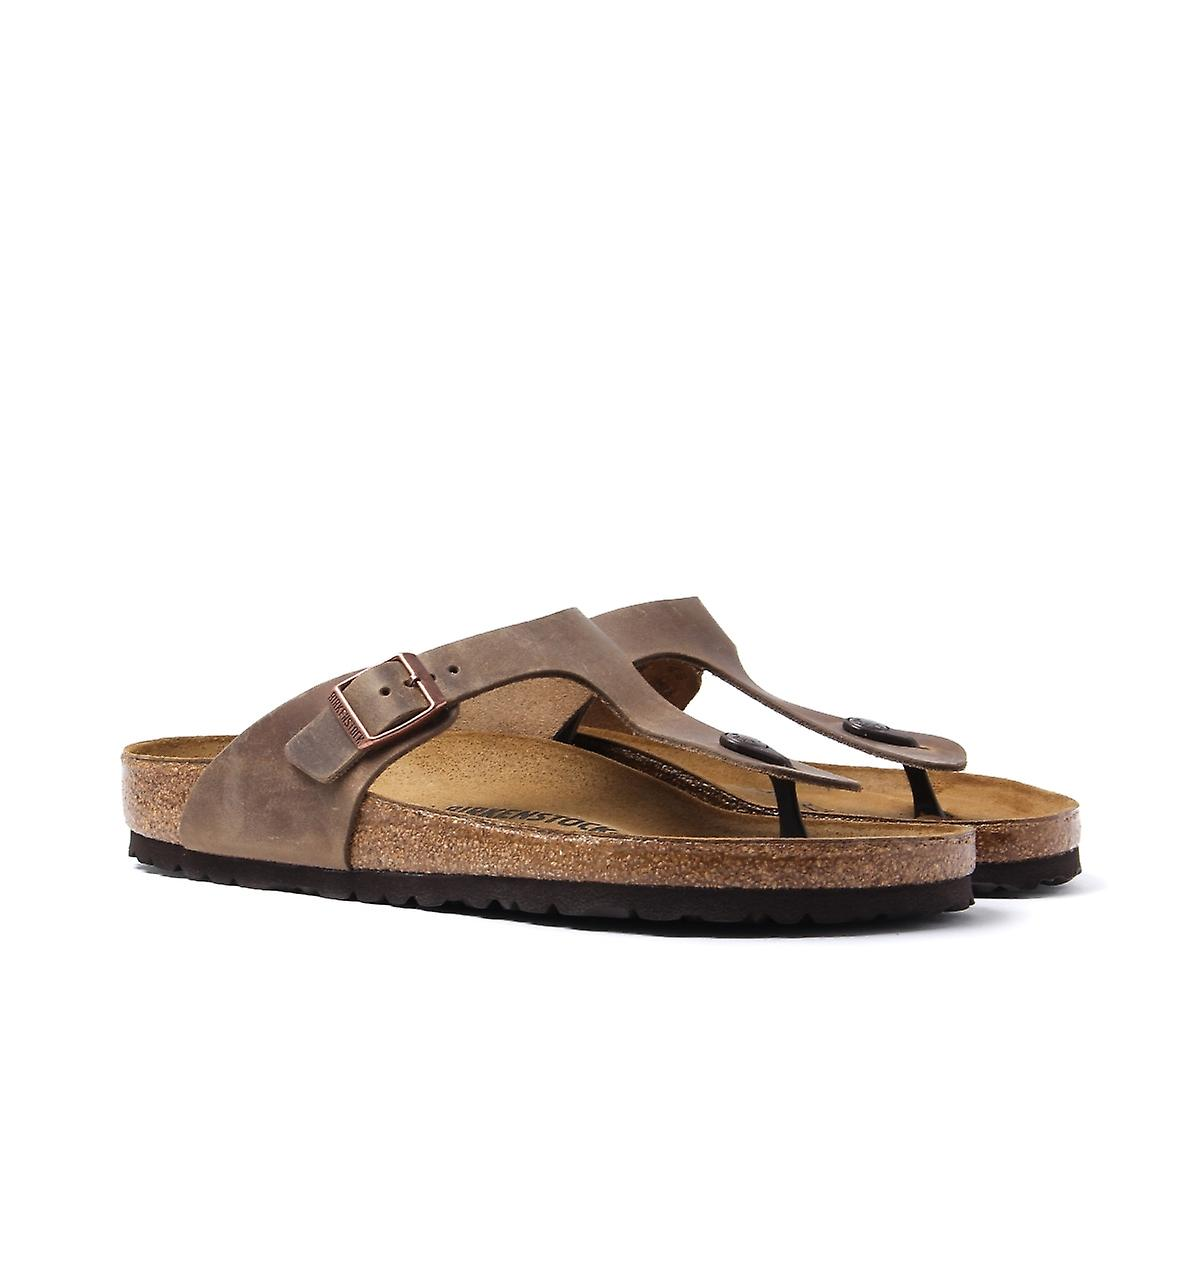 Birkenstock Tobacco Brown Leather Gizeh Sandal